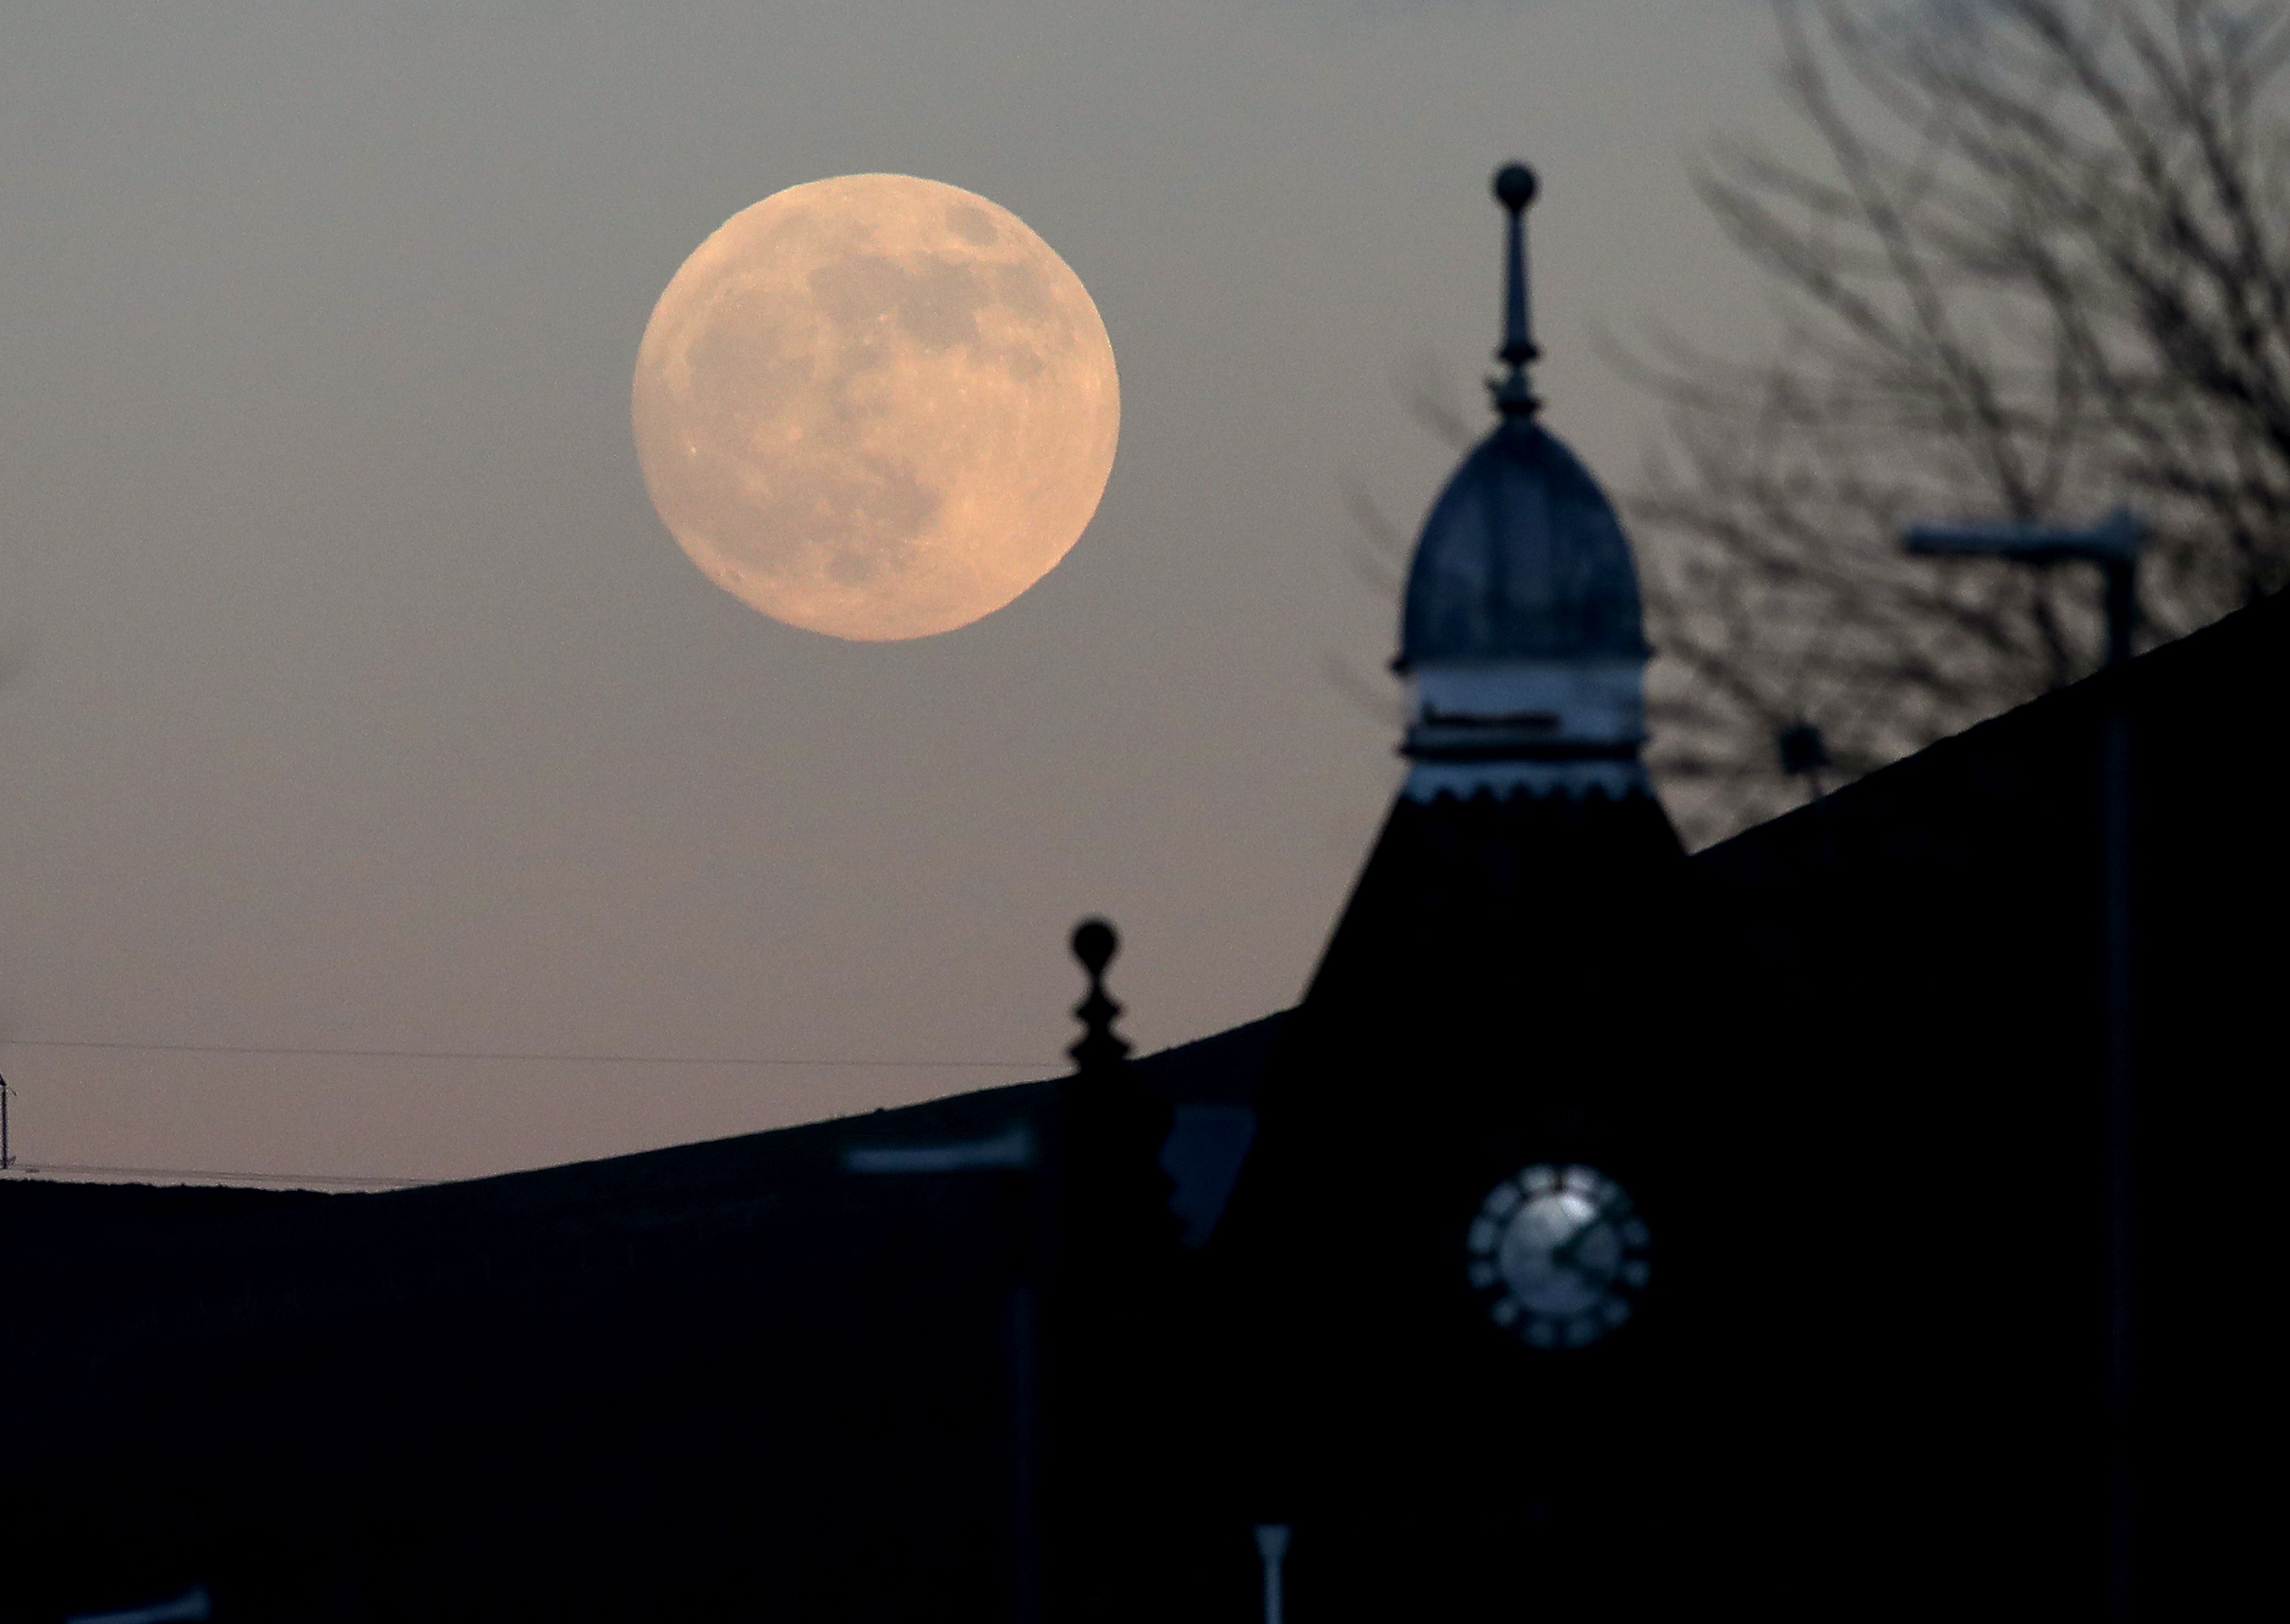 Biggest supermoon of 2019 lights up sky on Tuesday